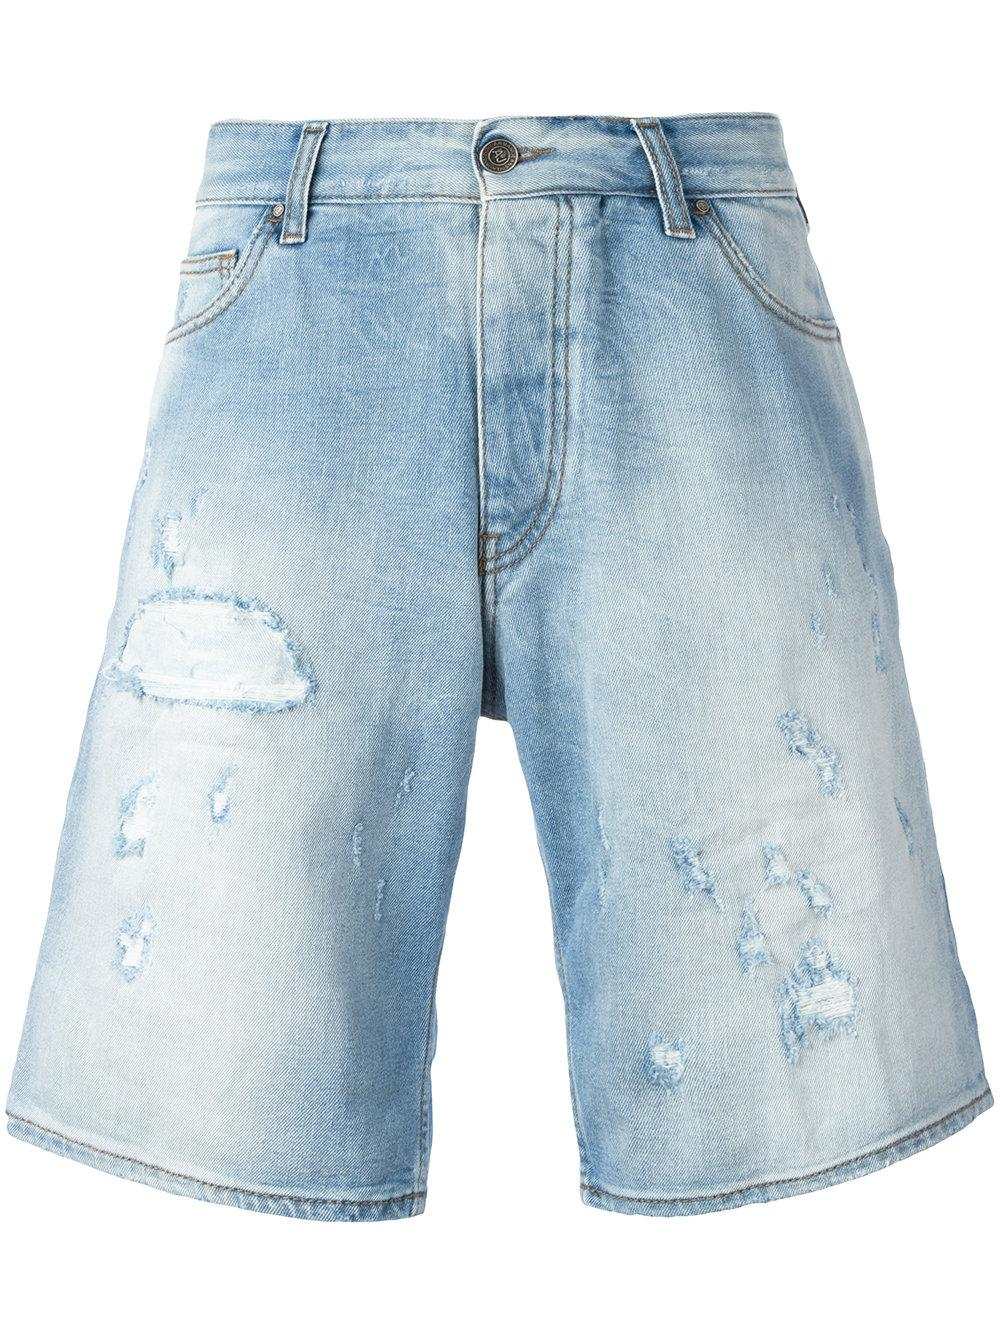 Or change things up by choosing a pair of ripped and destroyed jean shorts to go with a stylish button up shirt. We have denim shorts for men in a variety of styles and washes from all your favorite brands. From light to dark, with rips or embellishments, PacSun's collection of jean shorts for men is sure to have something for every guy.